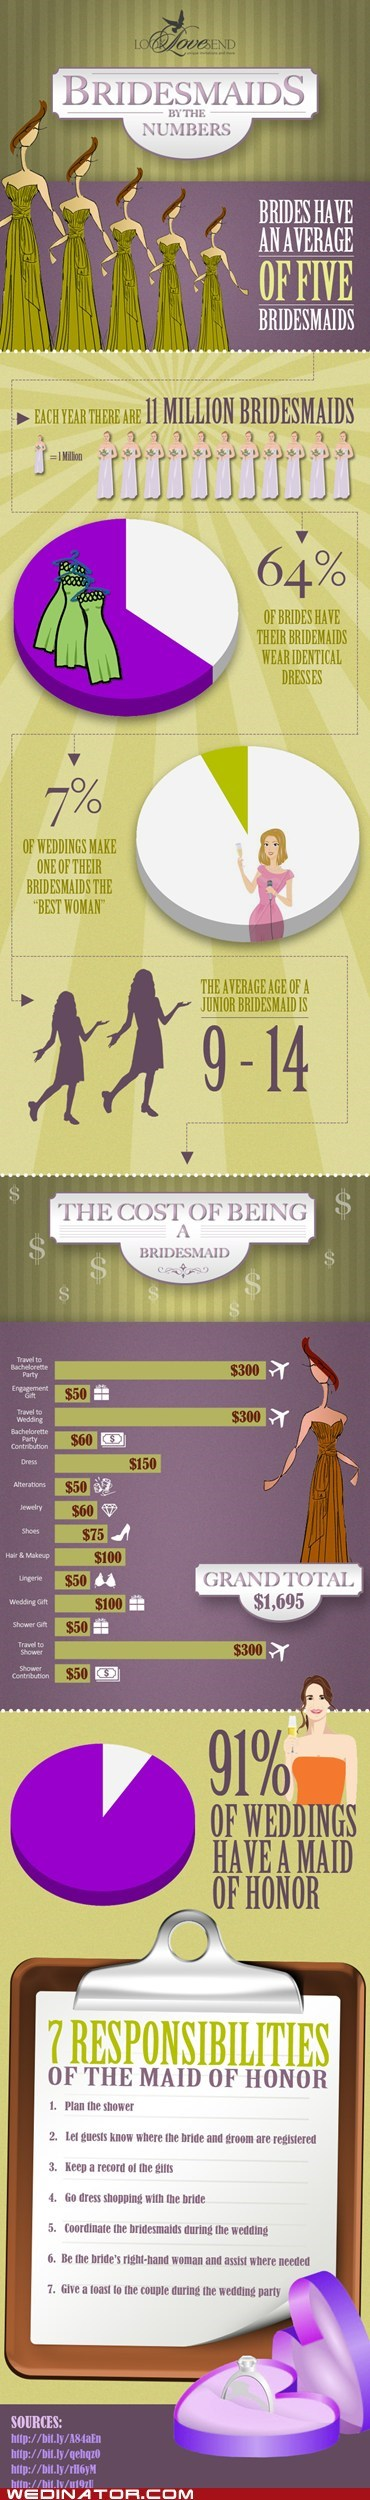 bridesmaids funny wedding photos infographics money